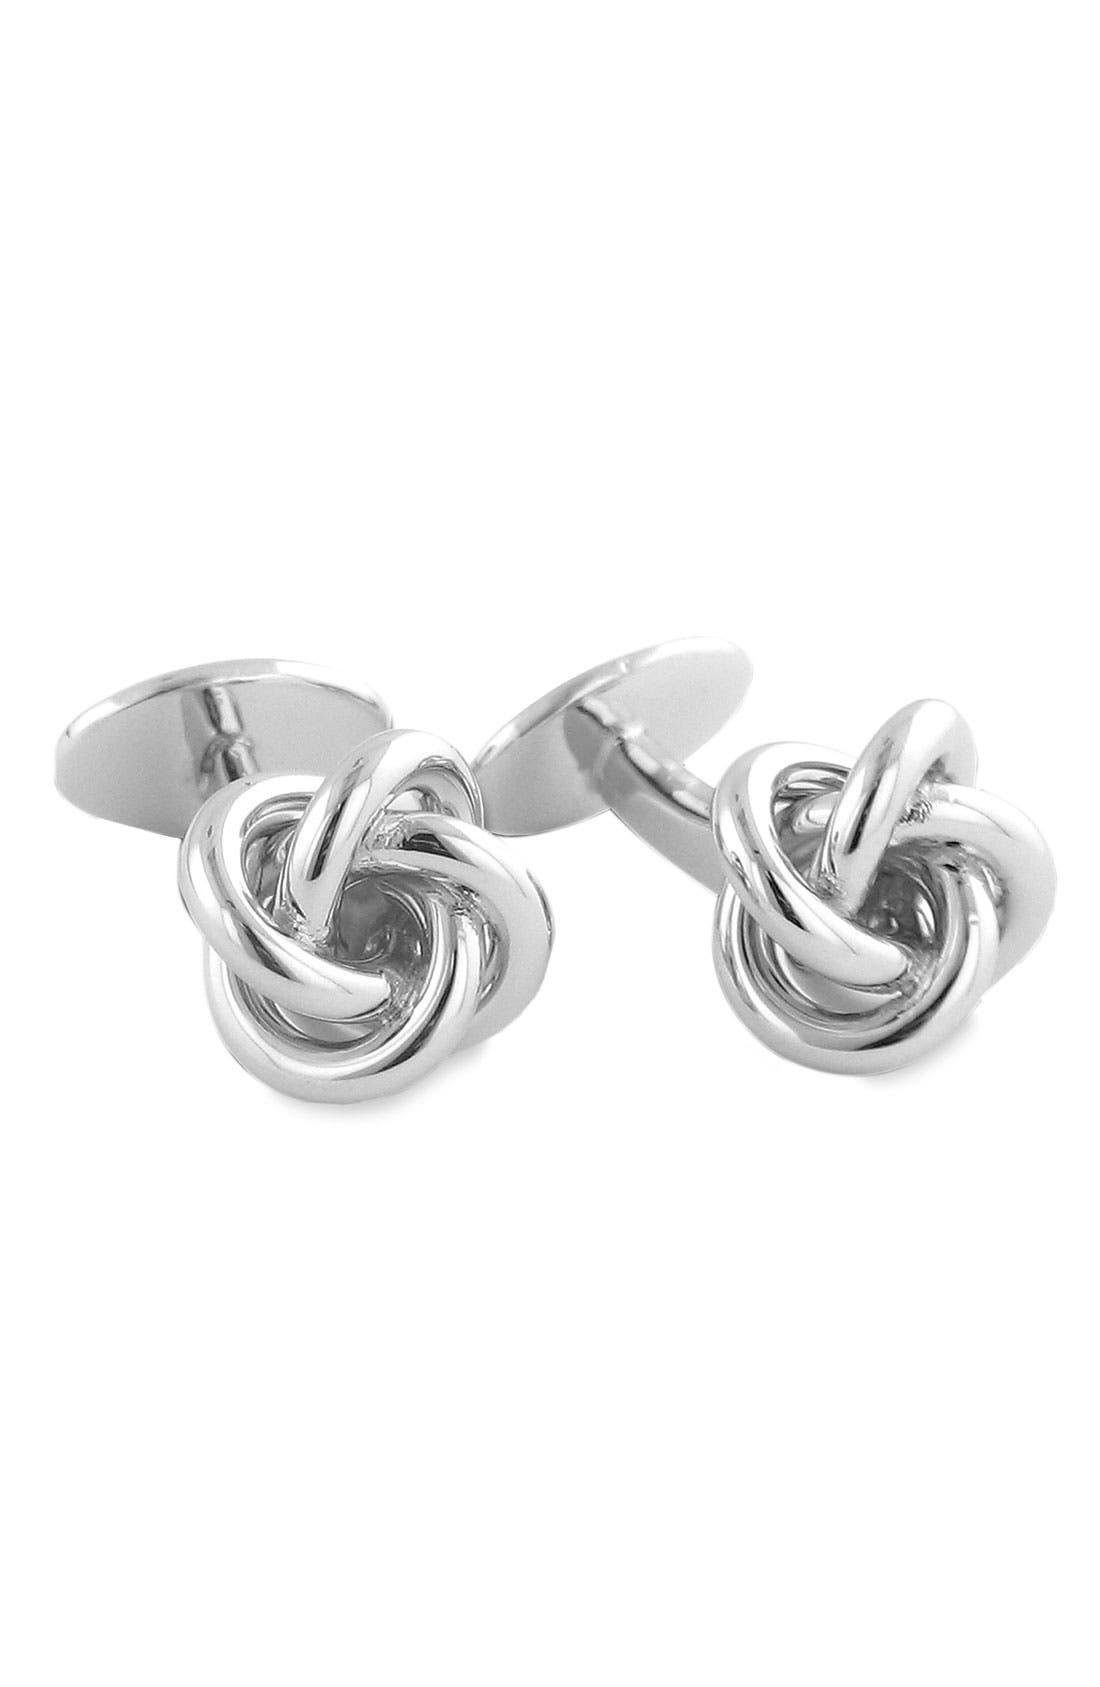 Alternate Image 1 Selected - David Donahue Knot Cuff Links